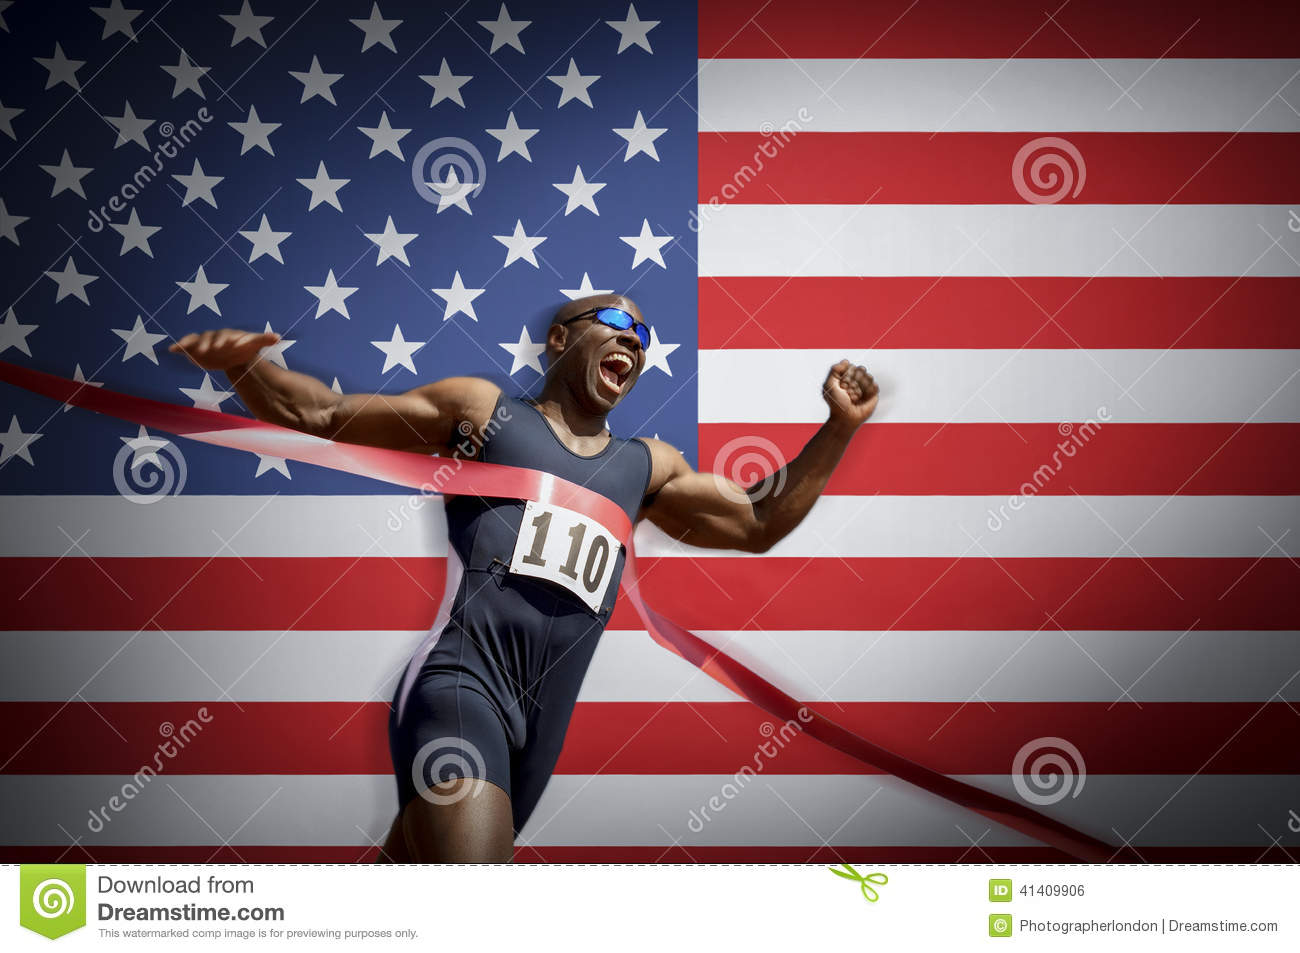 Male athlete crossing finish line against American flag